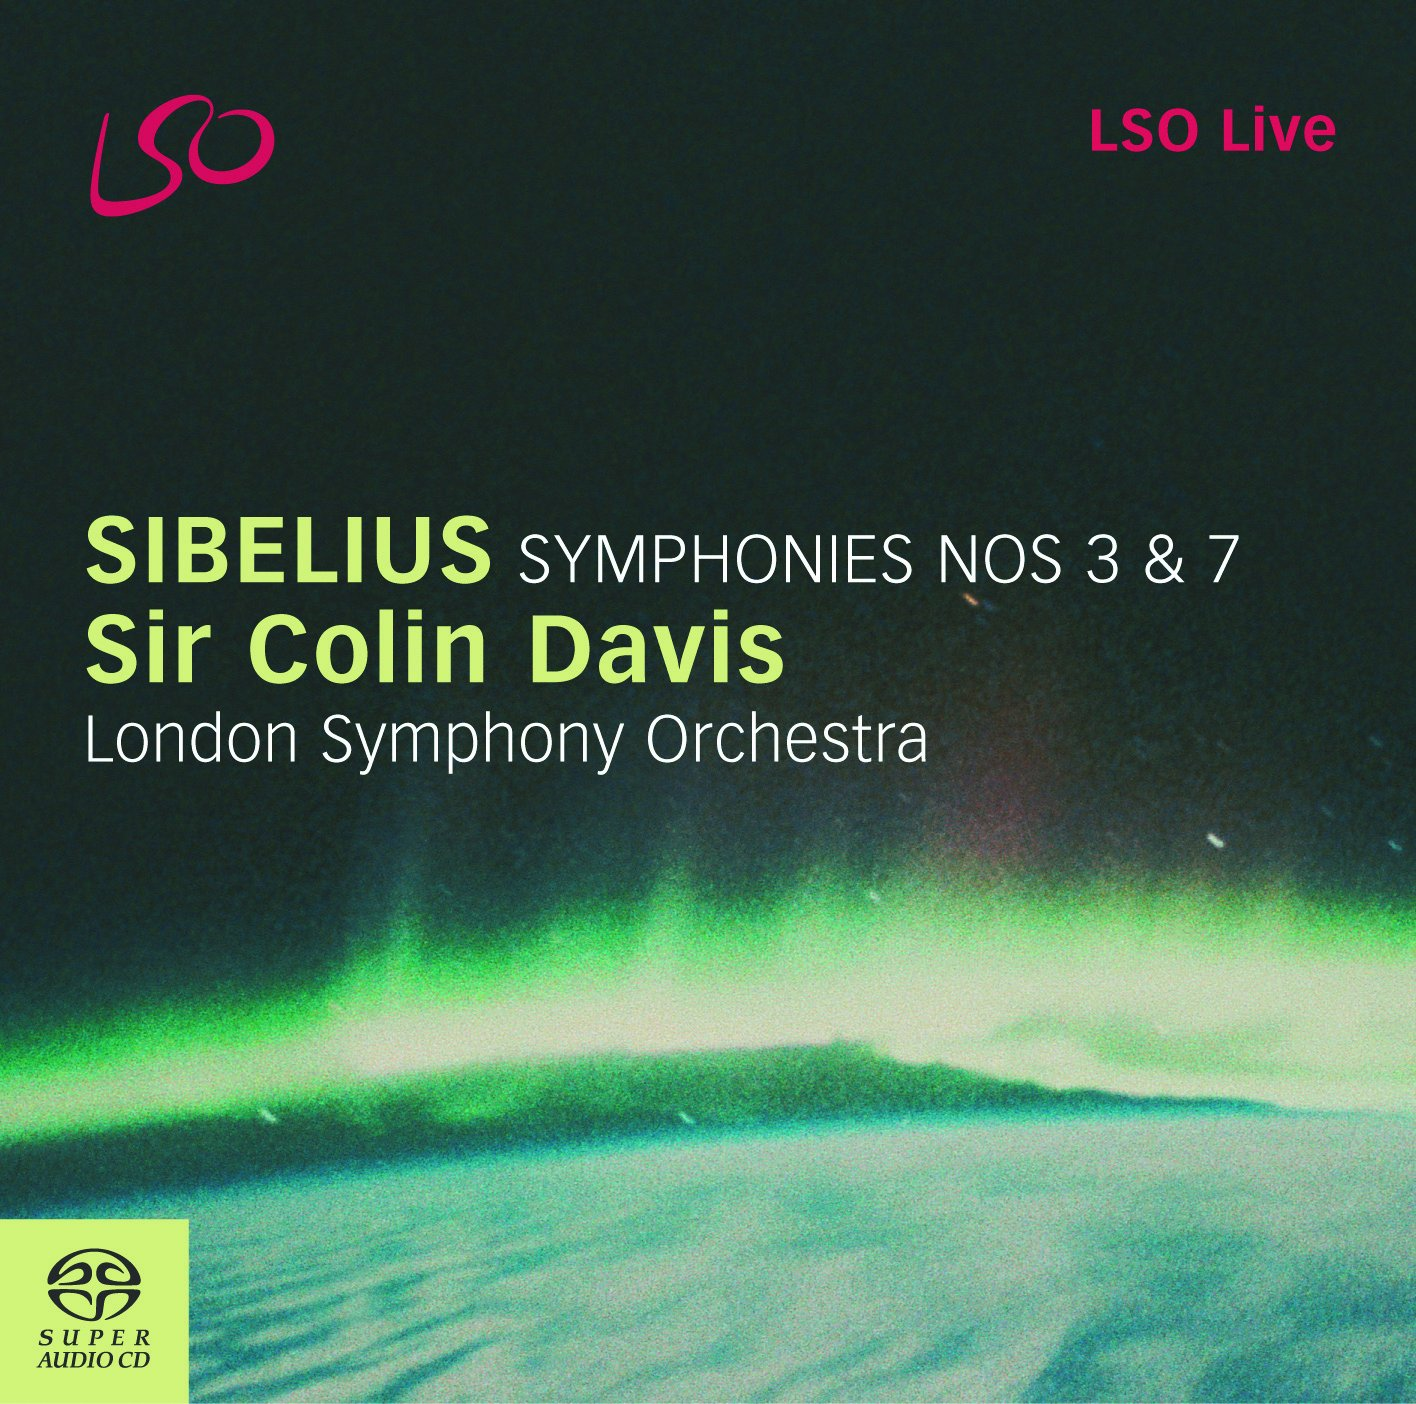 Sibelius: Symphonies Nos.3 & 7 by LSO LIVE